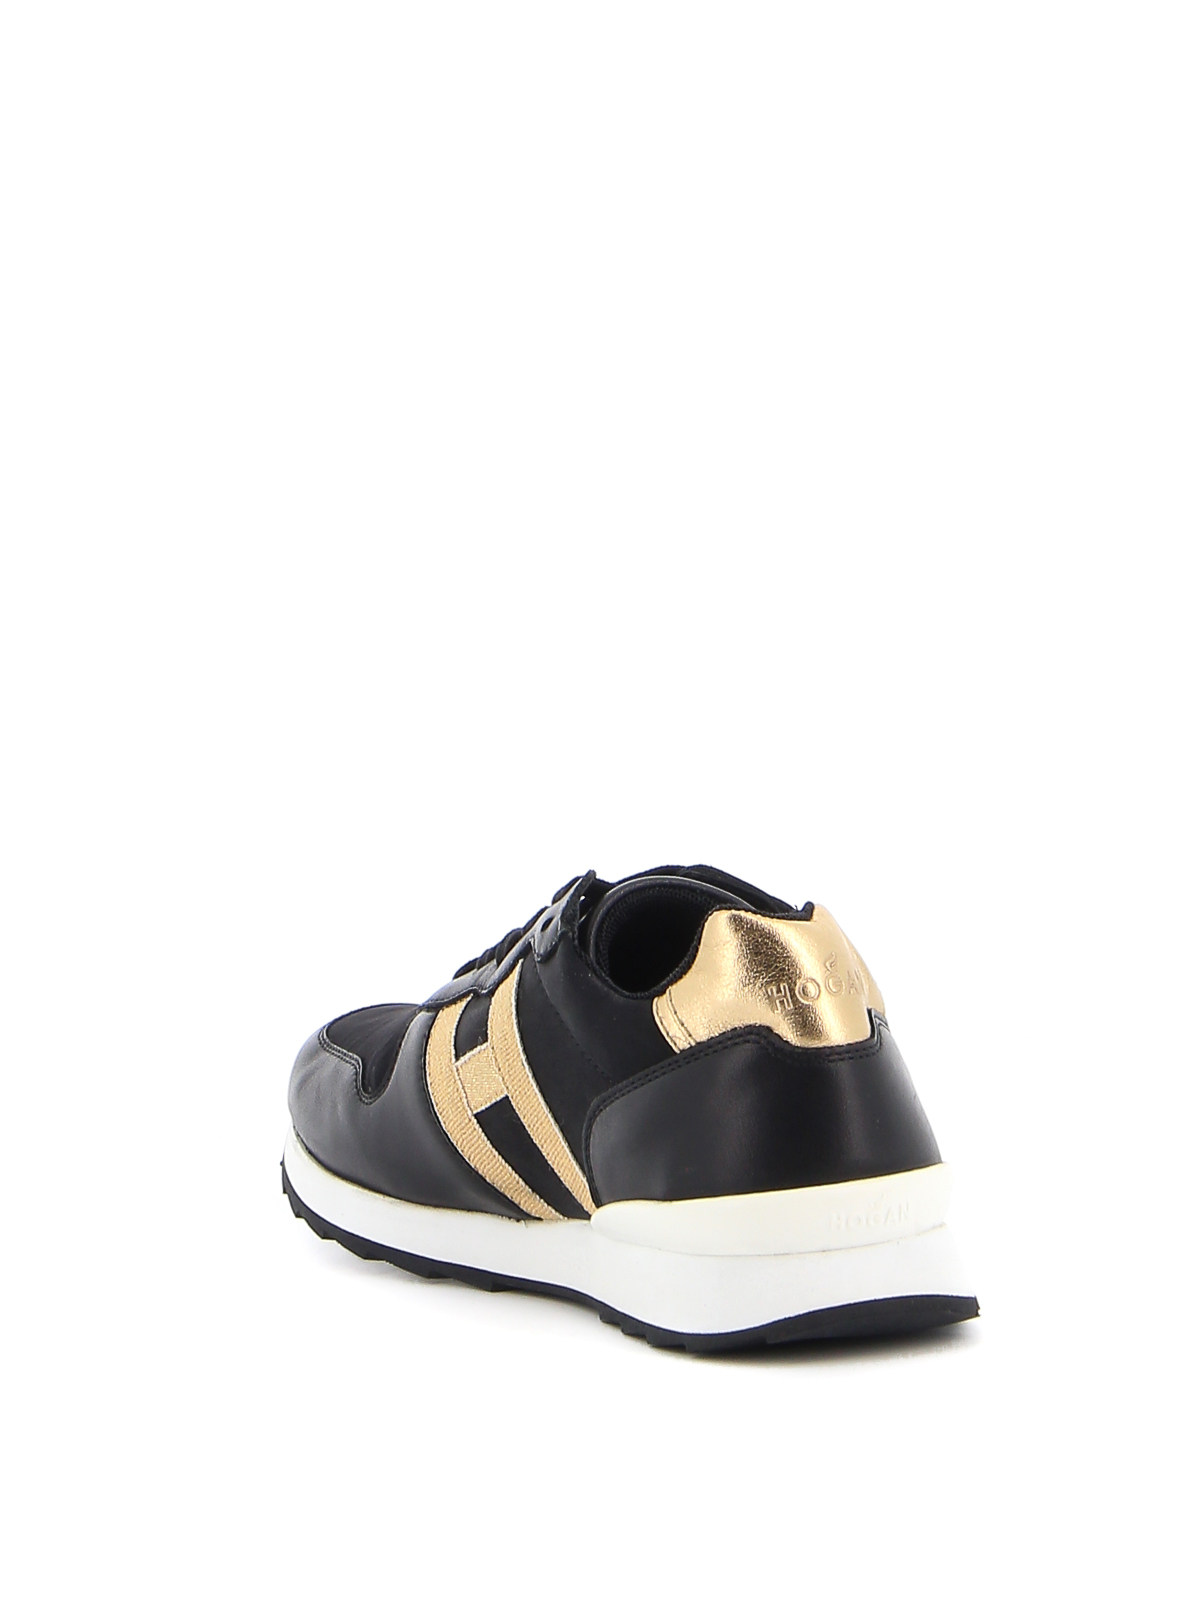 Hogan Junior - J484 H Nastro sneakers - trainers - HXC4840CY50OFC2929